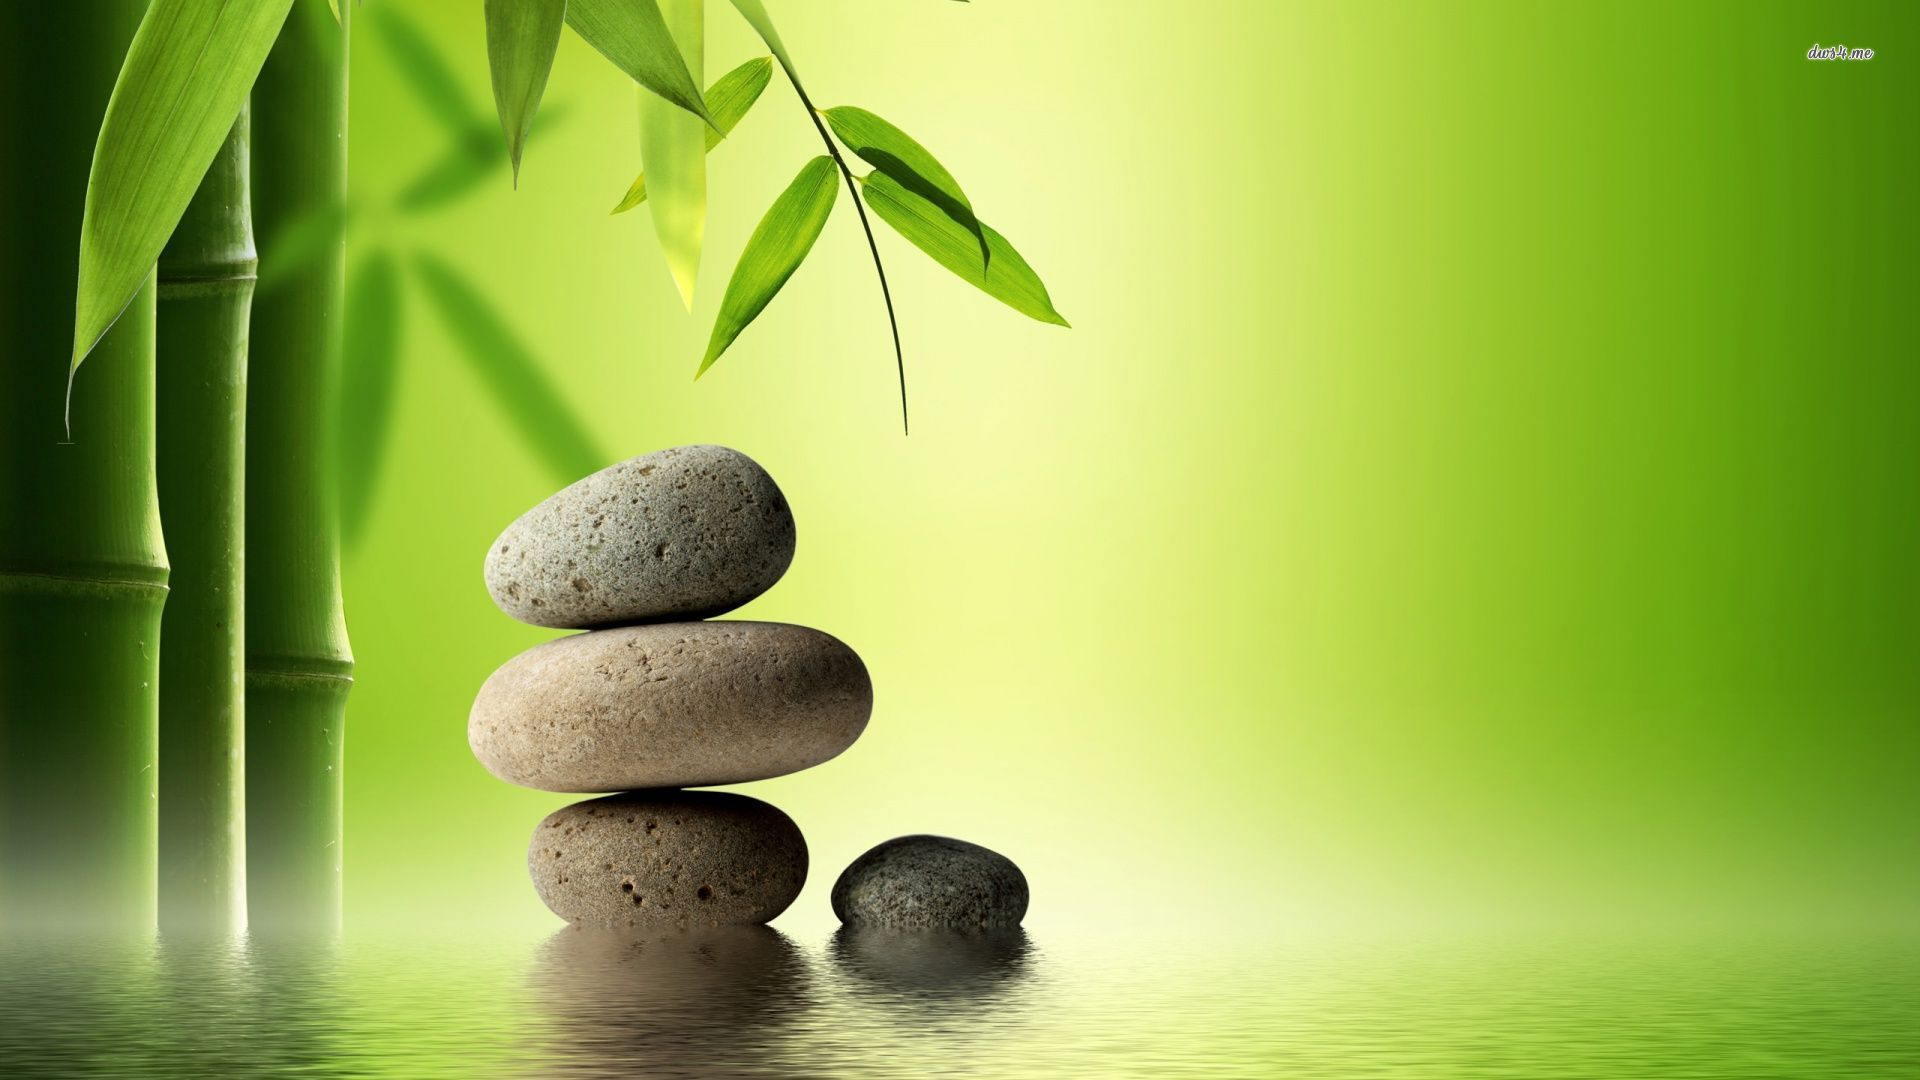 Hd zen wallpaper wallpapersafari - Decoration zen et nature ...